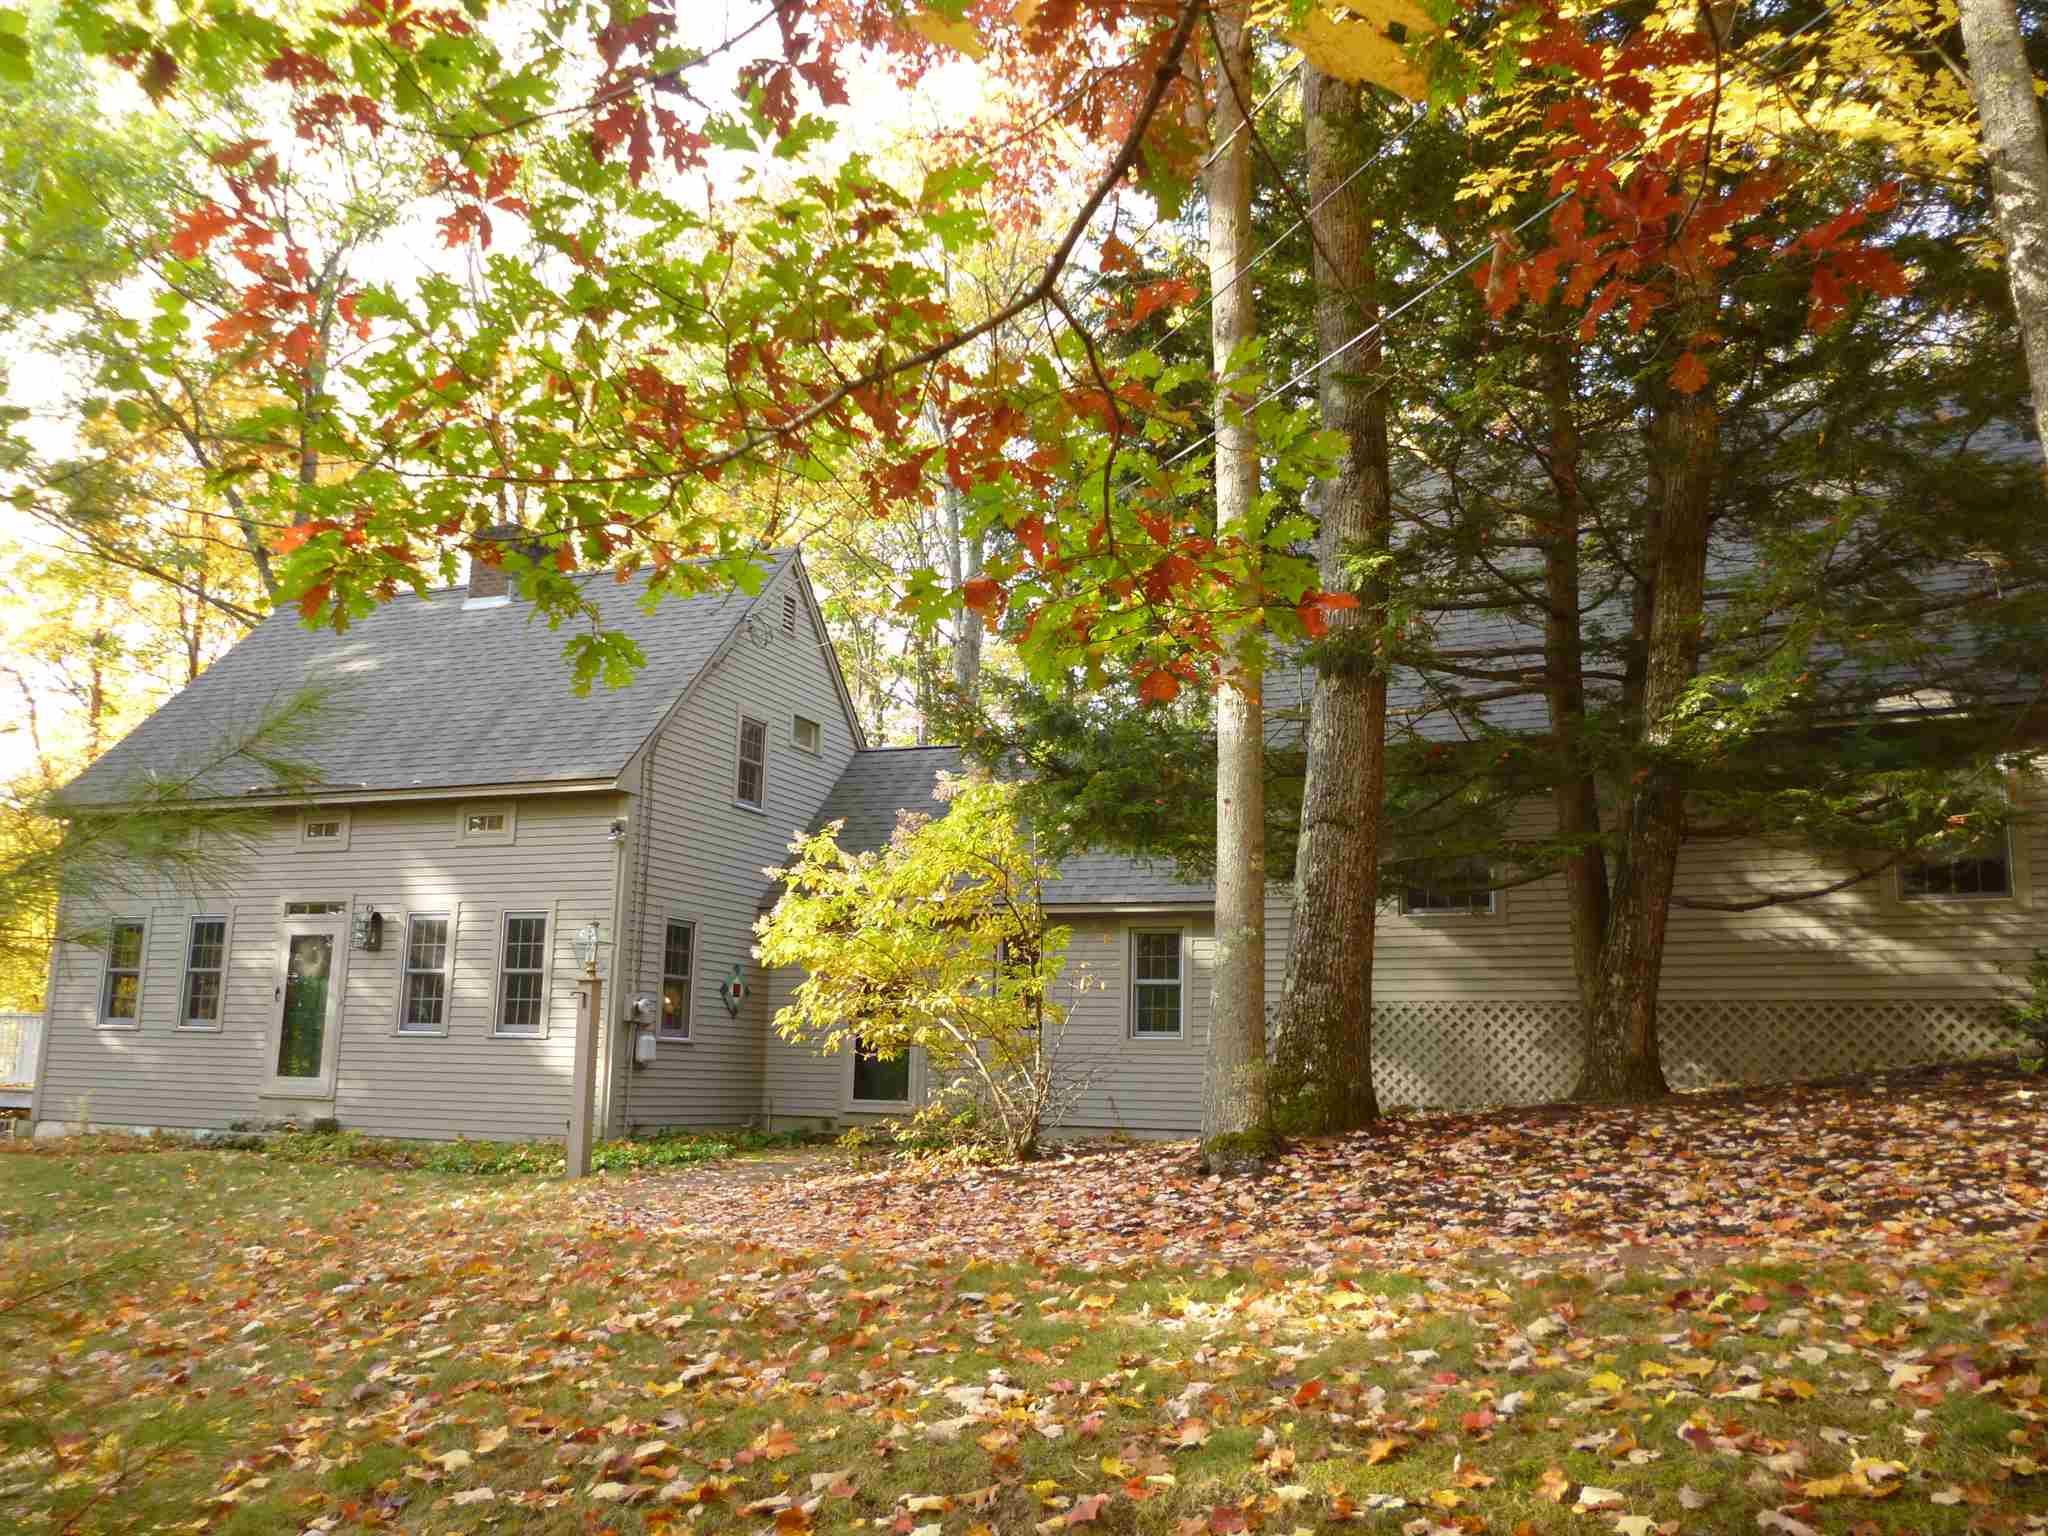 VILLAGE OF MIRROR LAKE IN TOWN OF TUFTONBORO NHHomes for sale